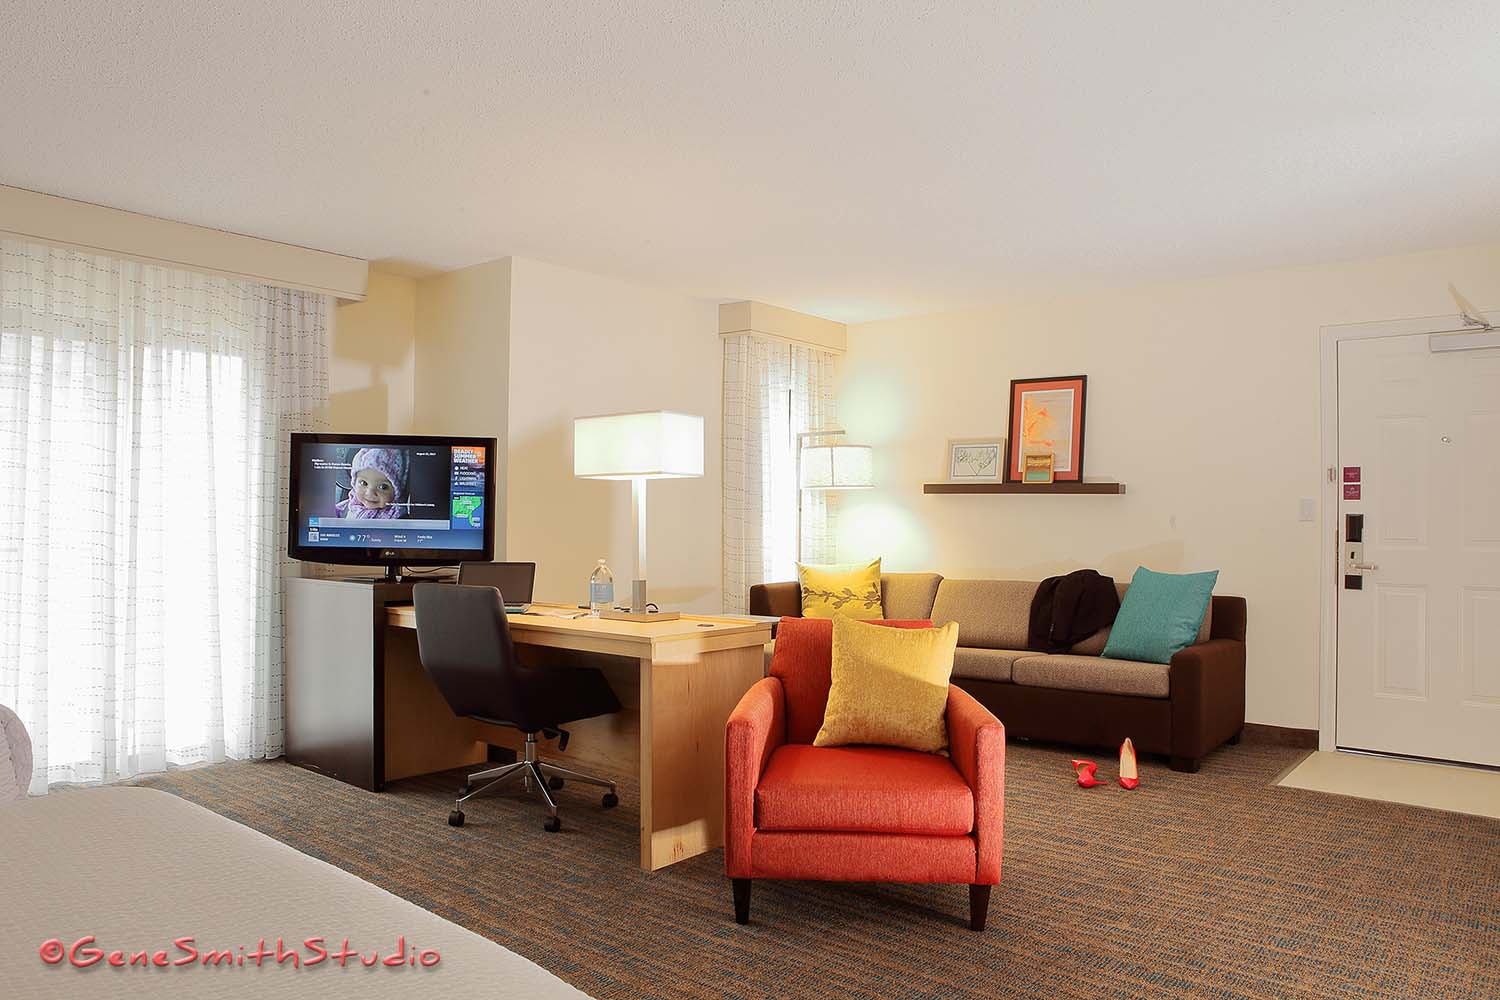 Bright airy photo of newly renovated Marriott Residence Inn hotel room.